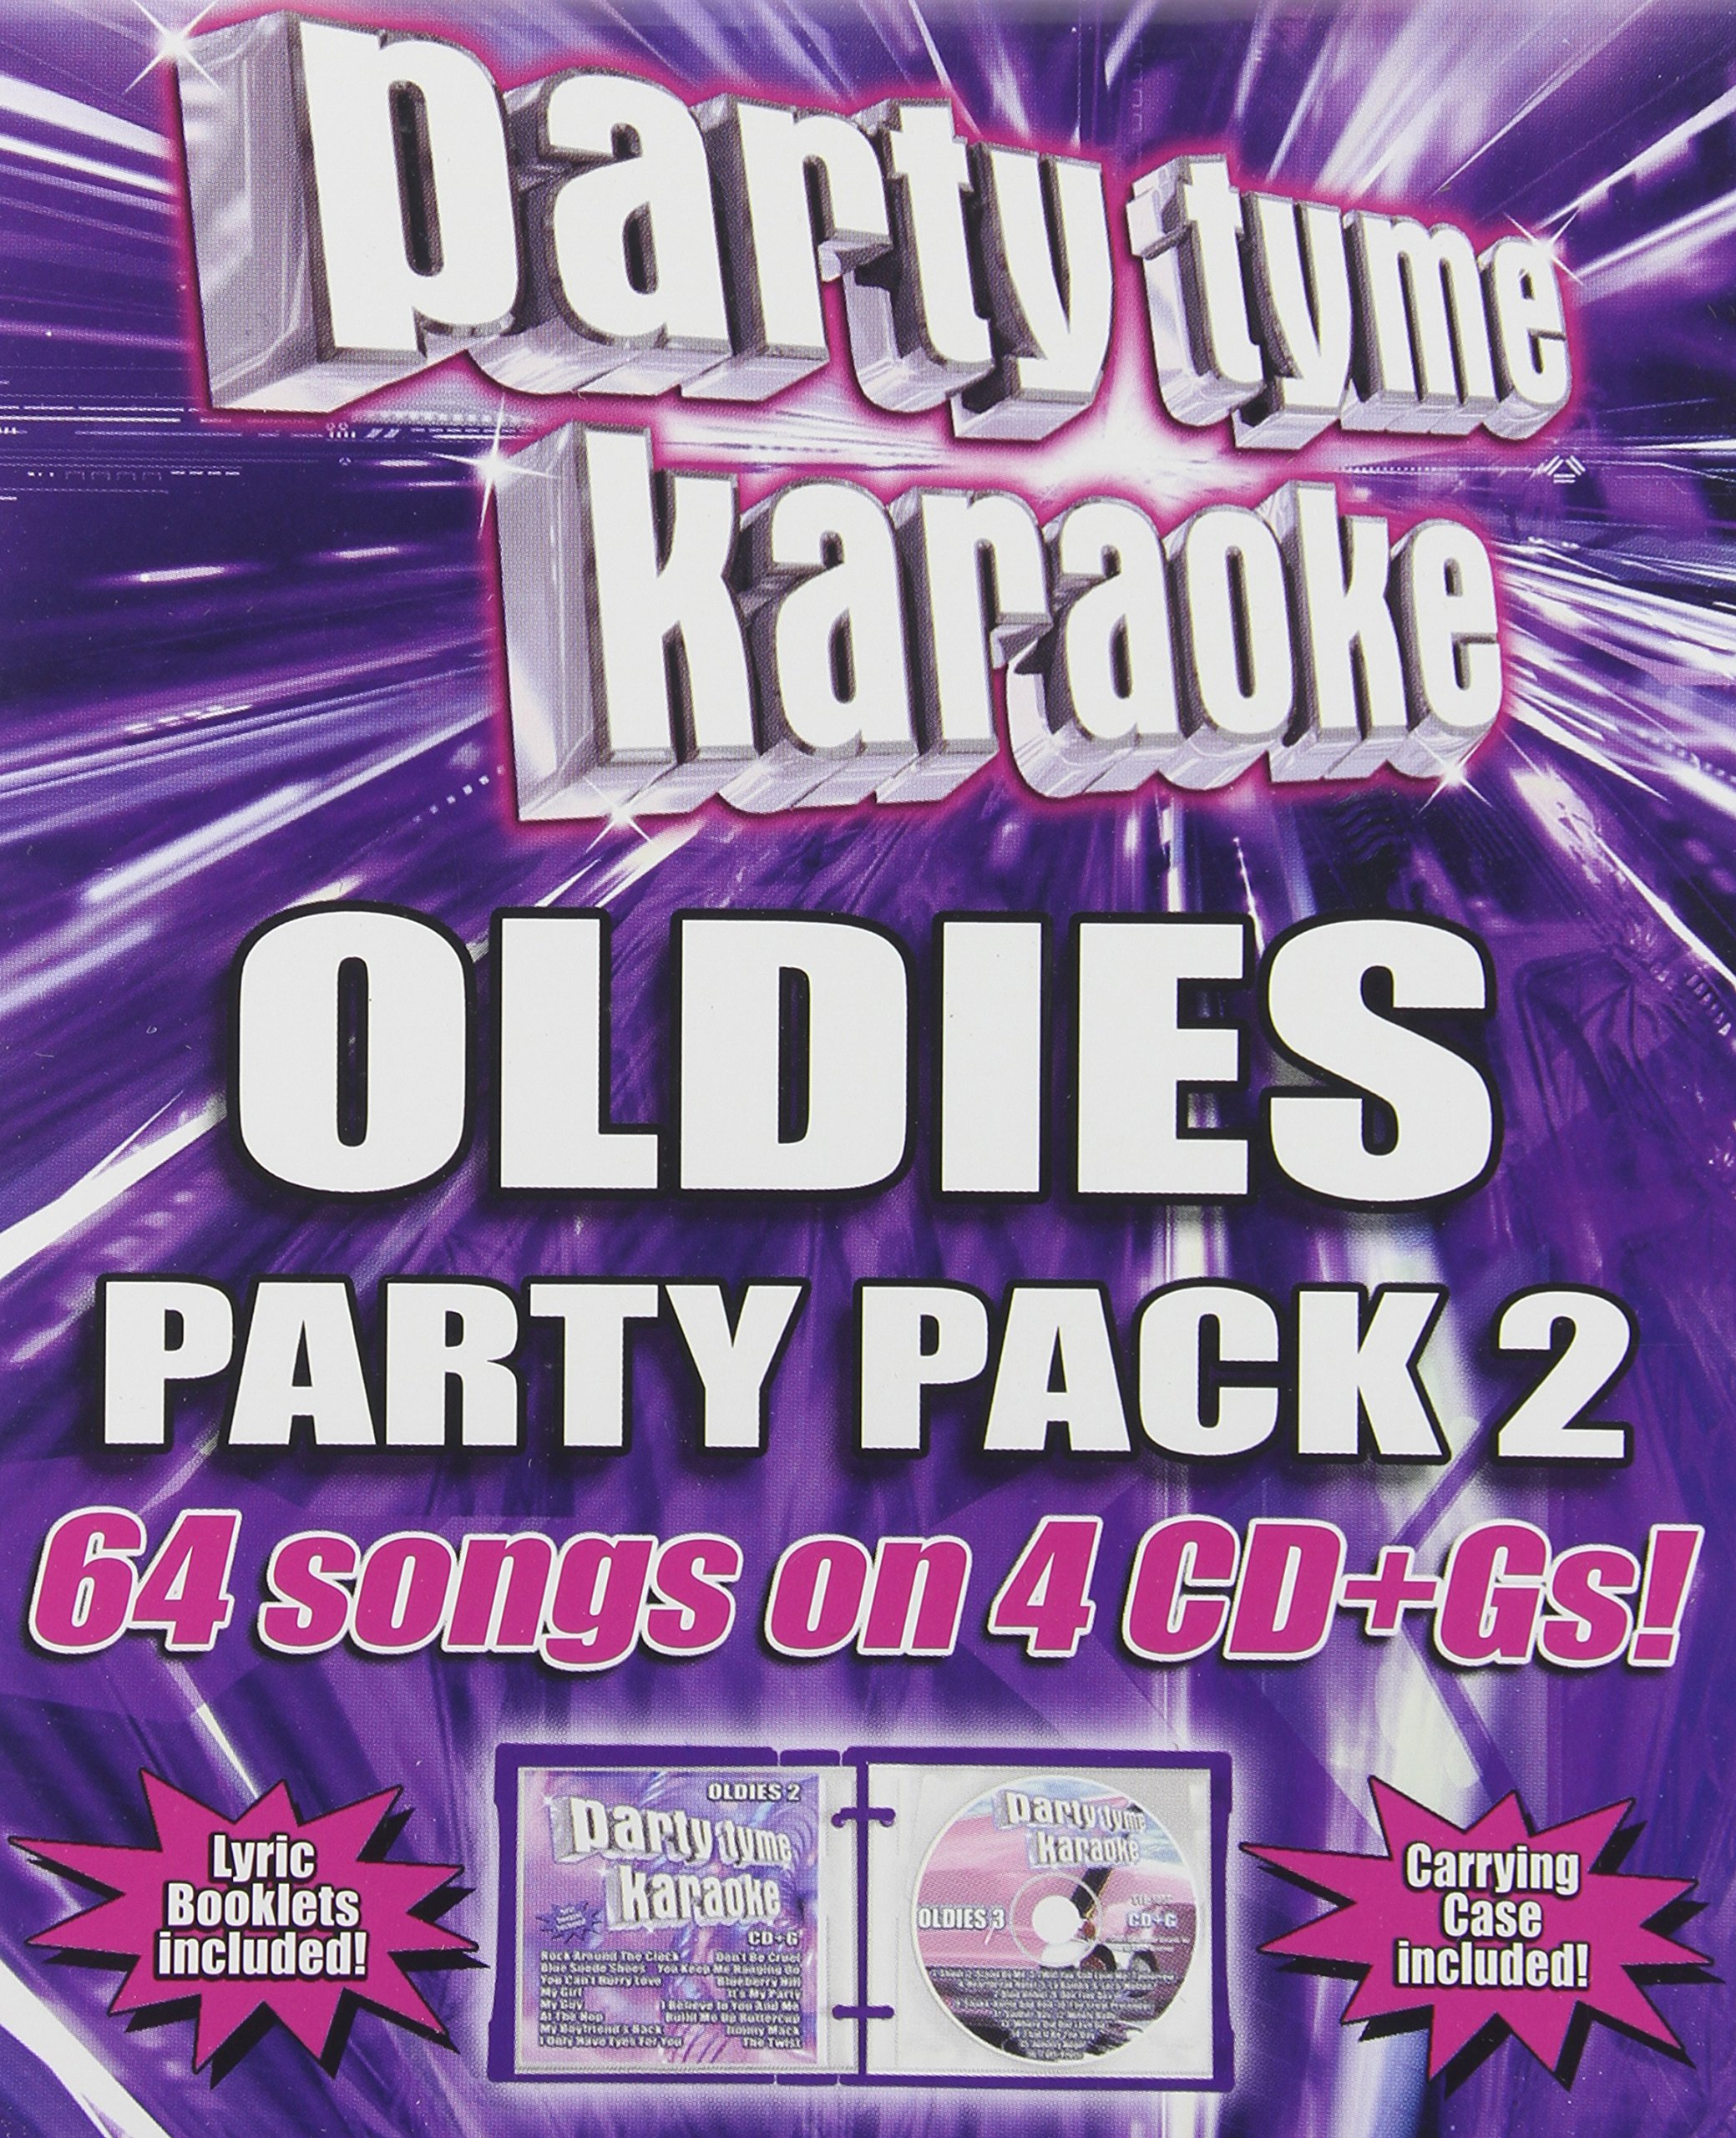 Party Tyme Karaoke - Oldies Party Pack 2 (64-song Party Pack) [4 CD] by SYBERSOUND